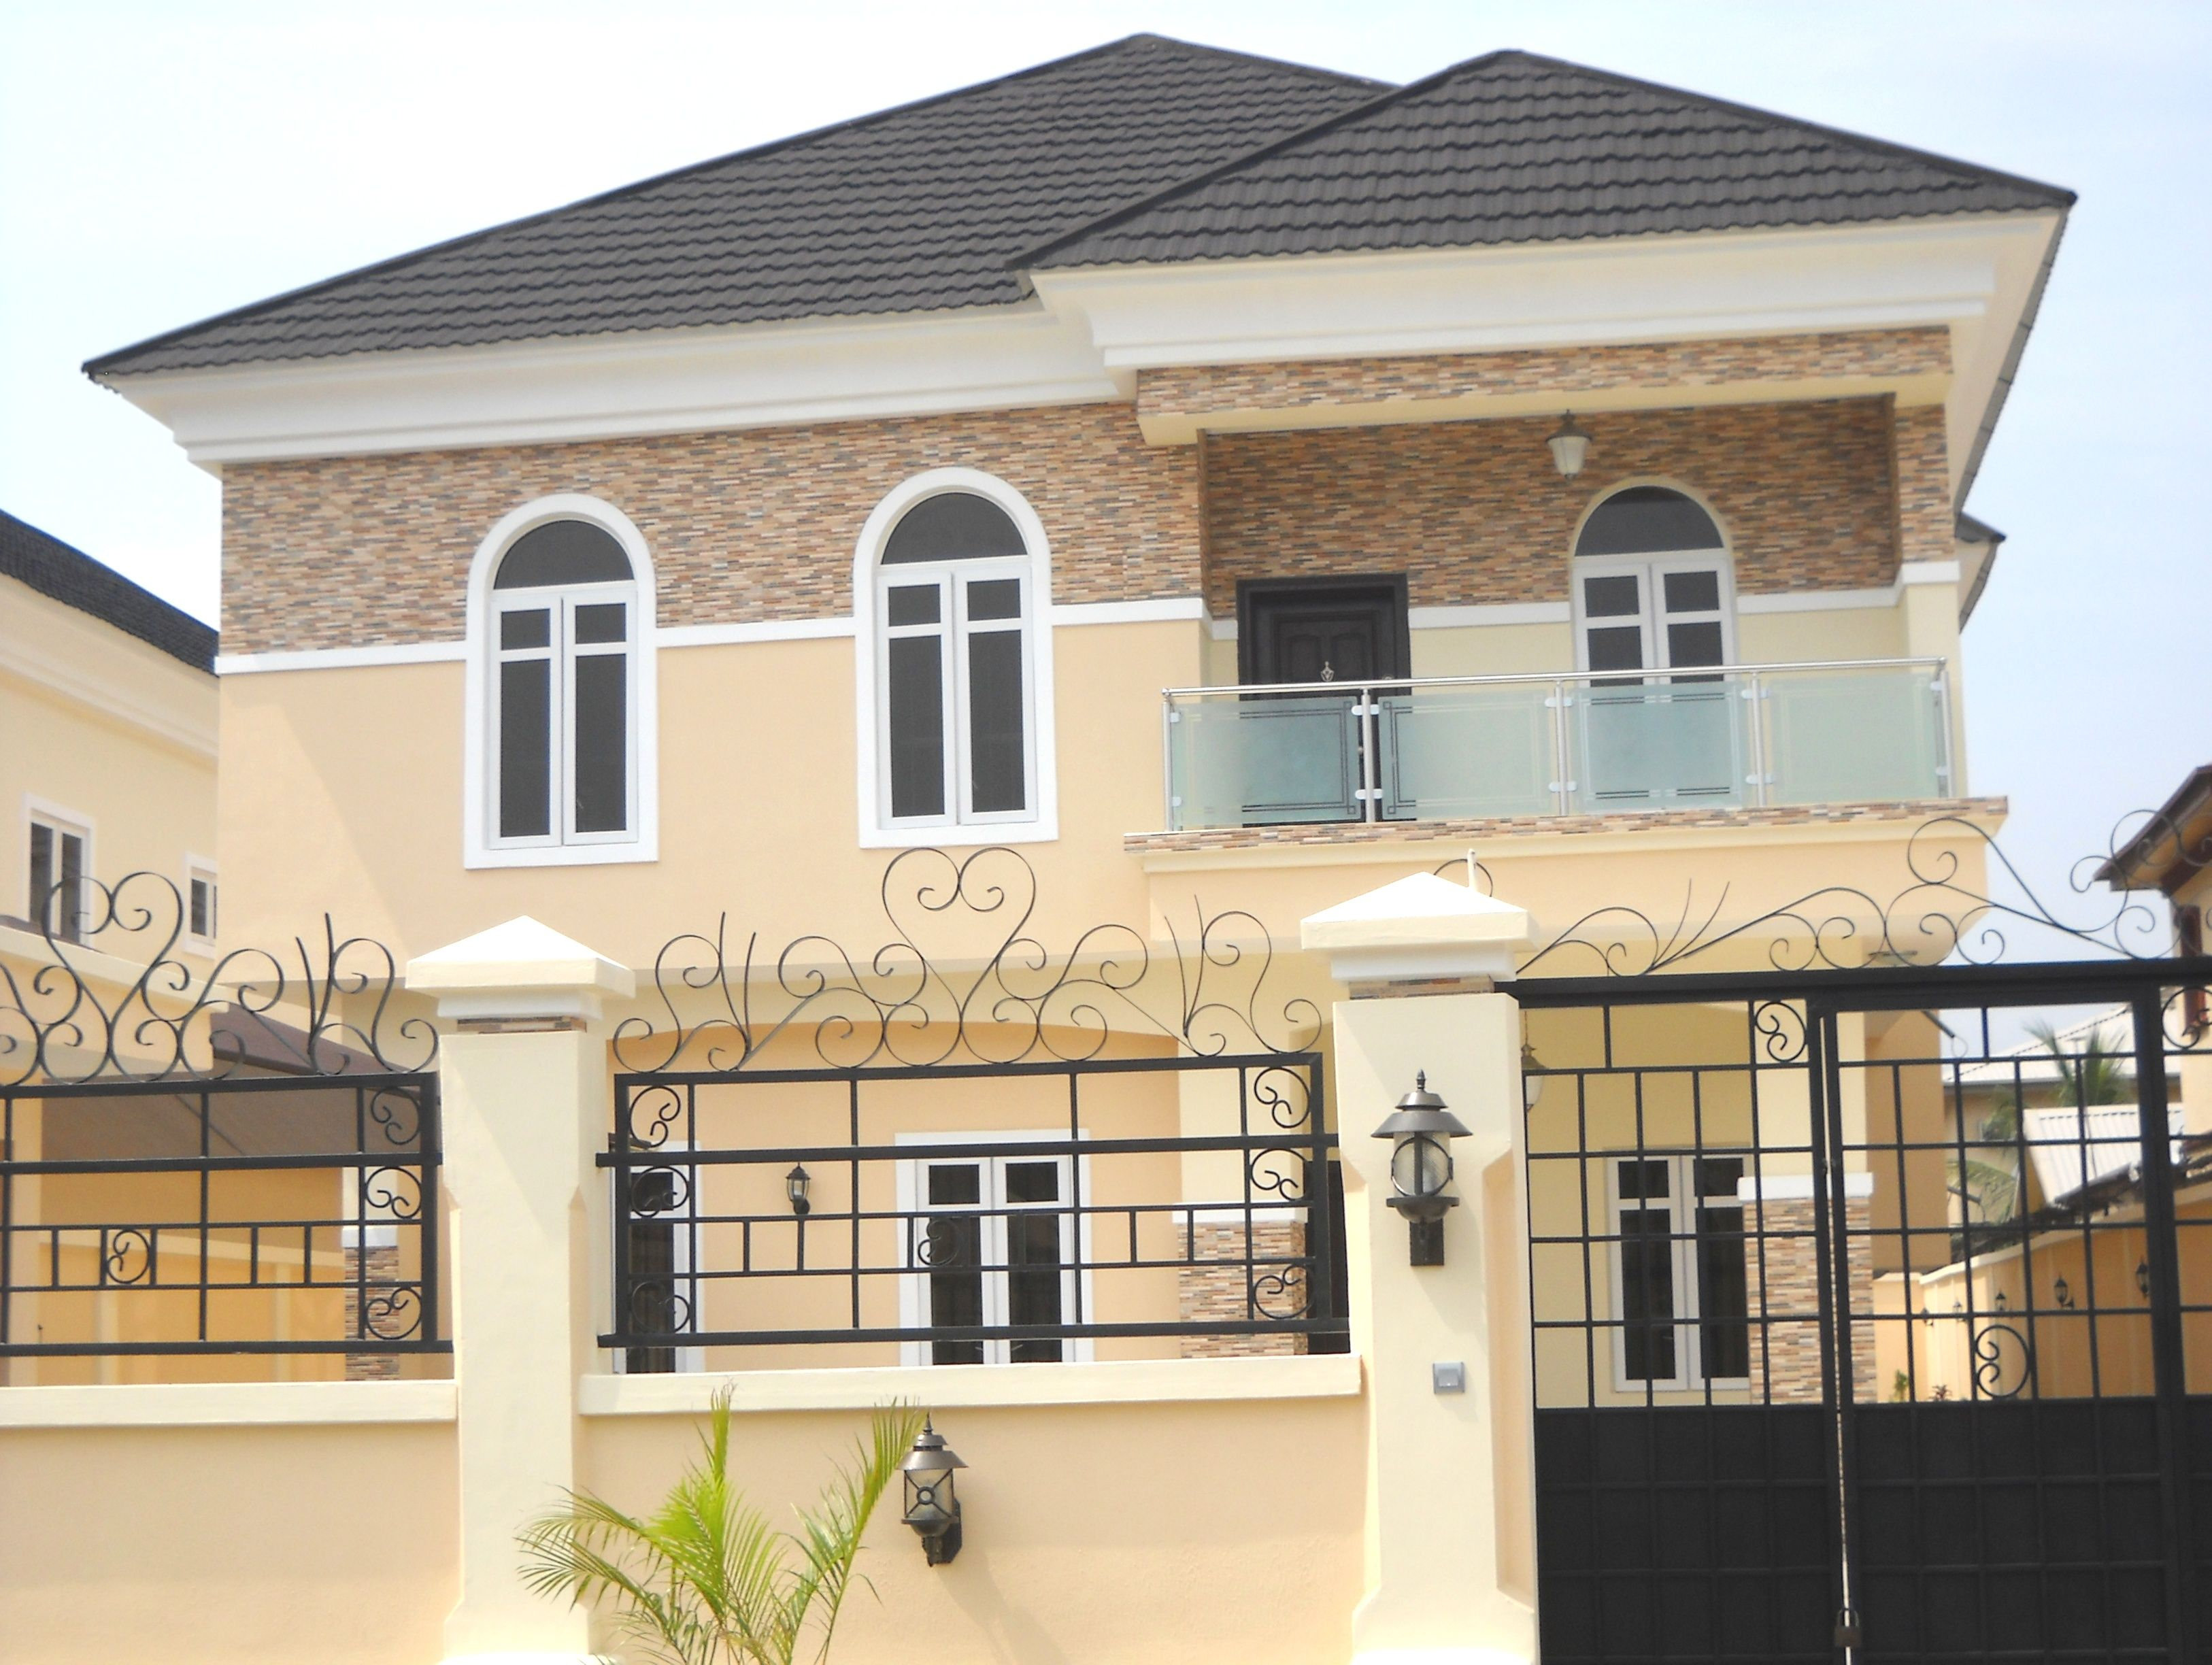 Own Beautiful Houses In Nigeria Village Lagos Island